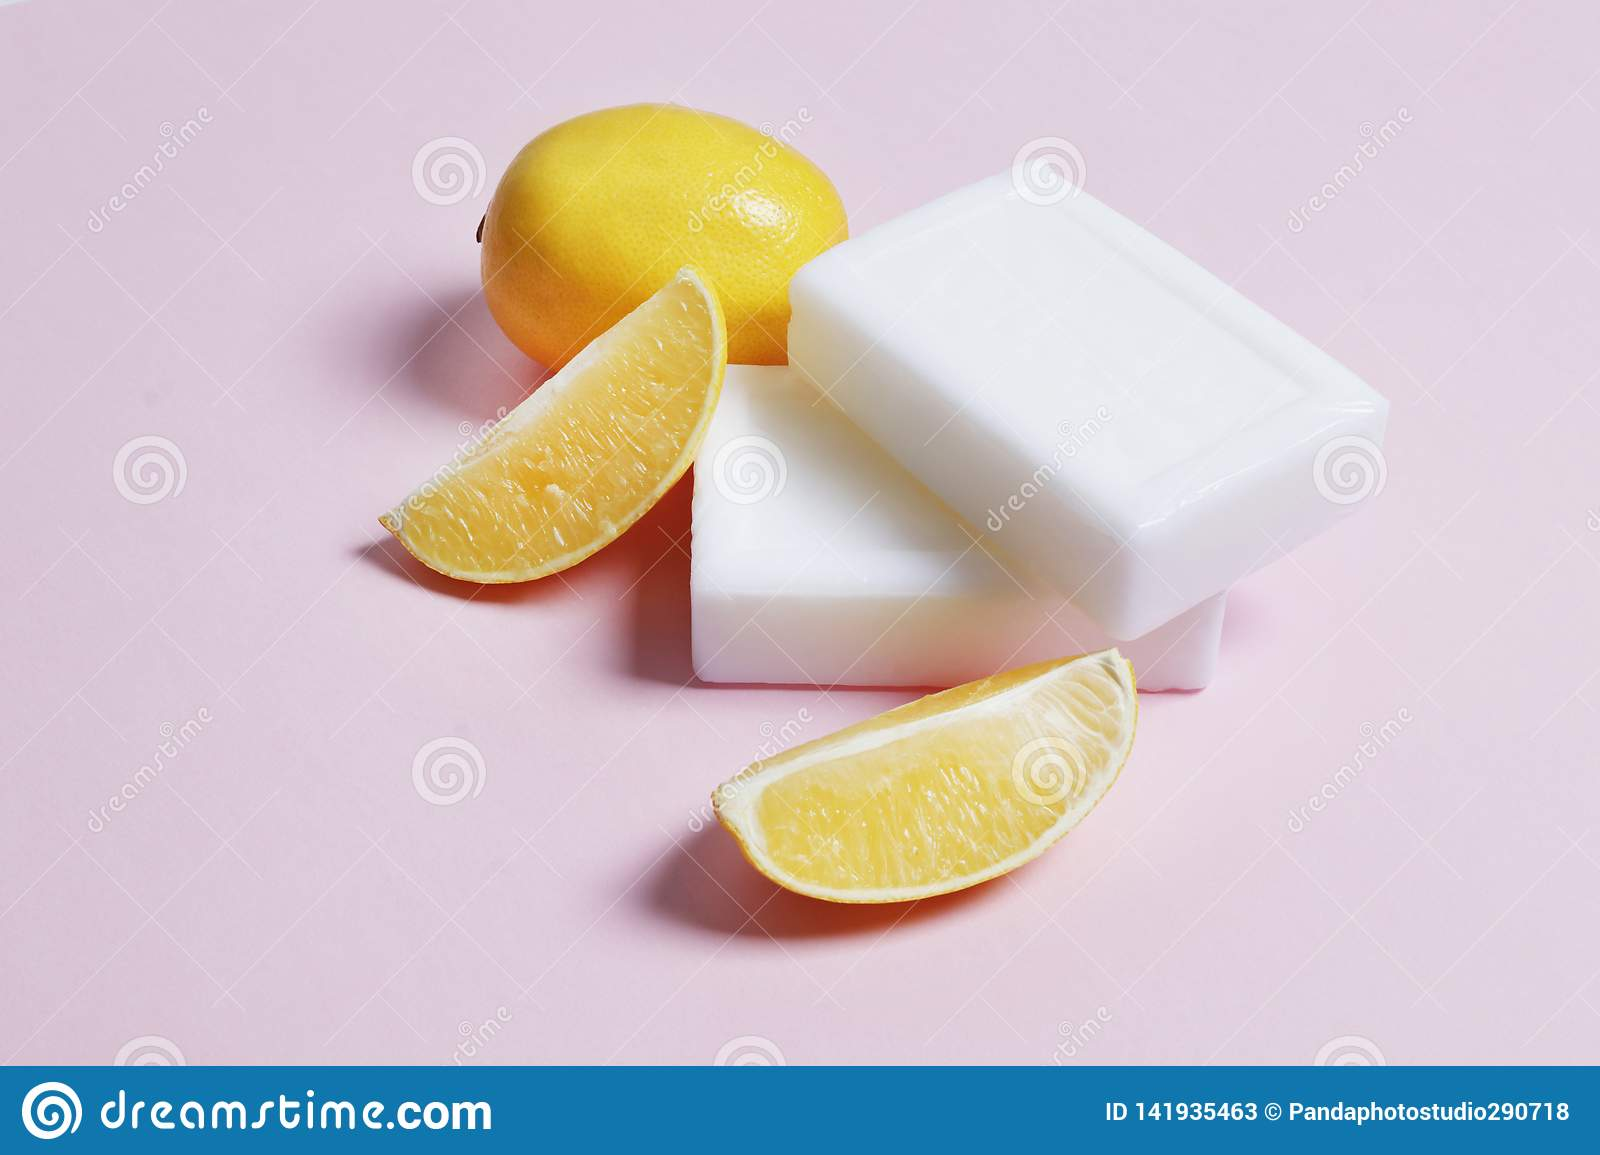 Lemon soap for washing and bleaching things on a pink background